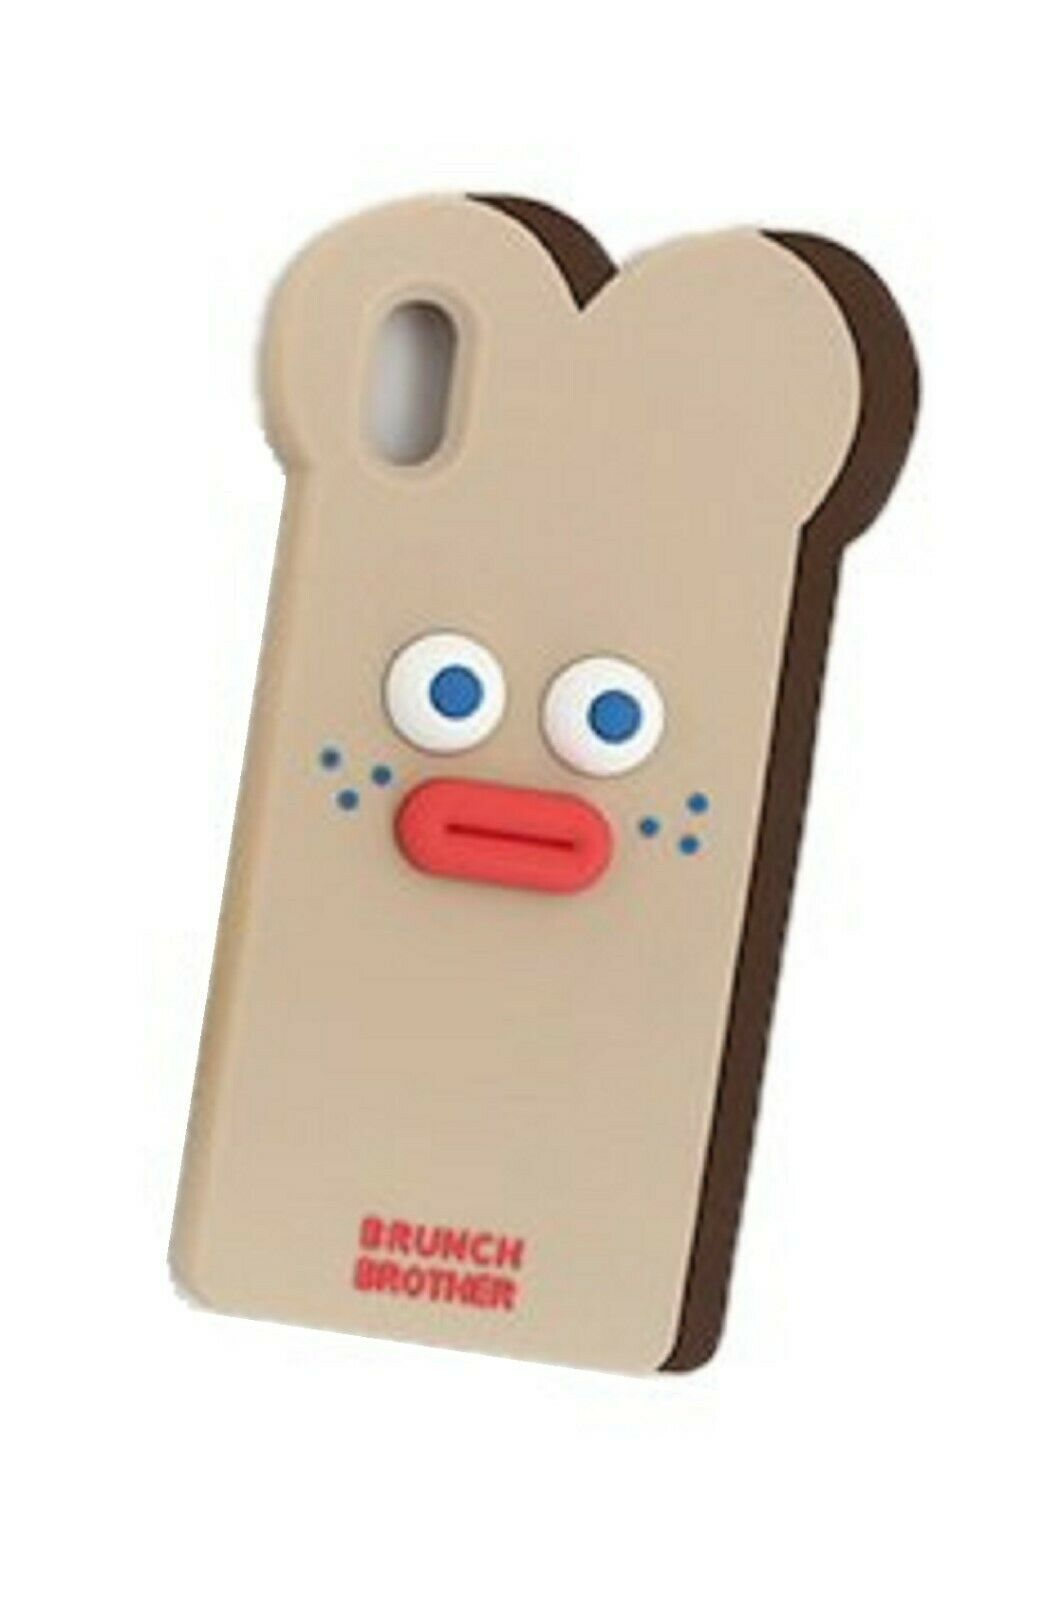 Brunch Brother iPhone XS MAX Silicon Case Cover Protector (Toast)